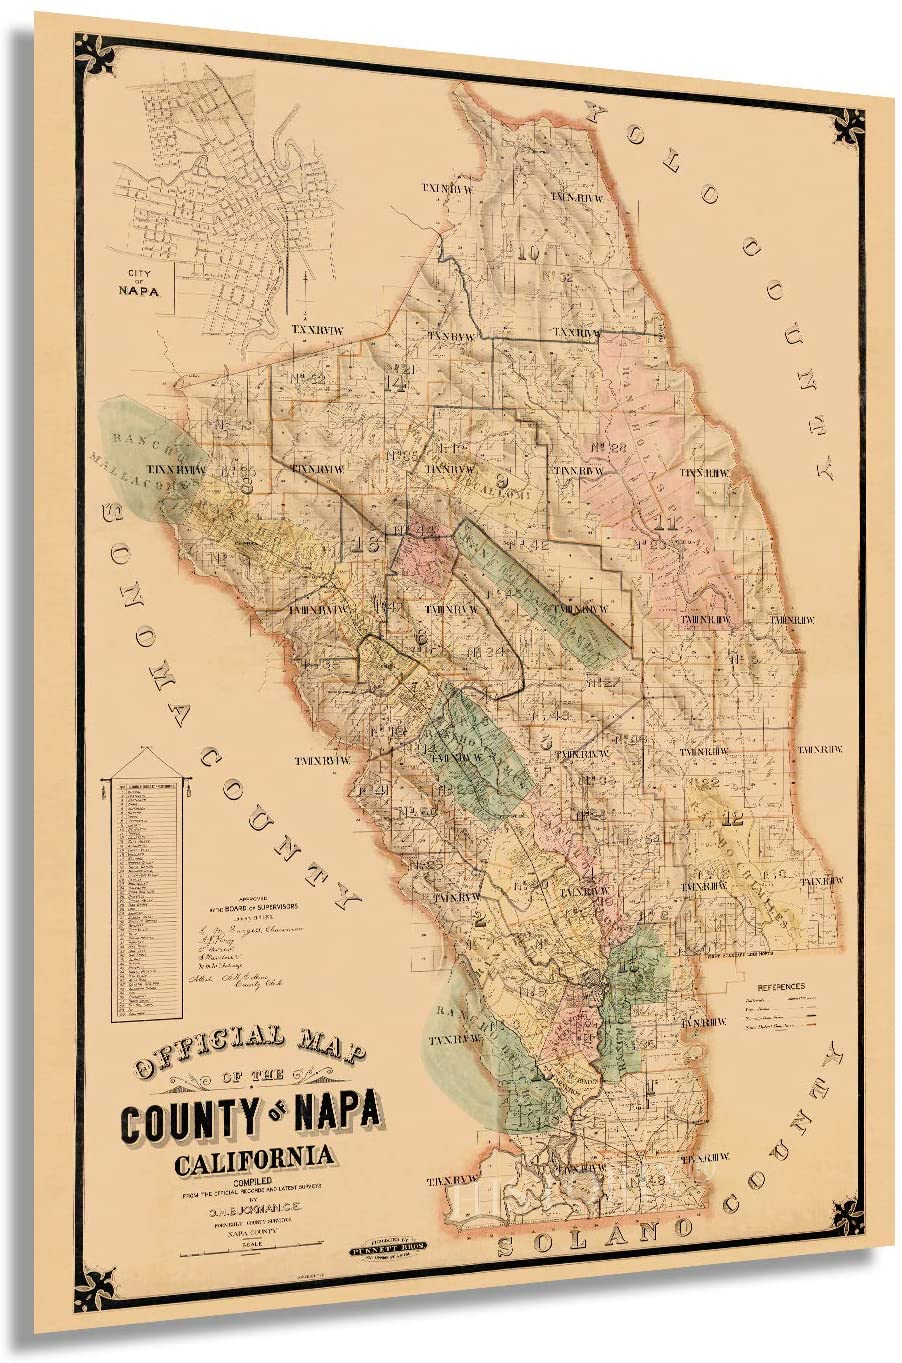 1895 Napa Map - Vintage Map of Napa California - Old Napa County CA Map - Historic Napa Wall Art - Napa Poster Map from Official Records and Latest Surveys